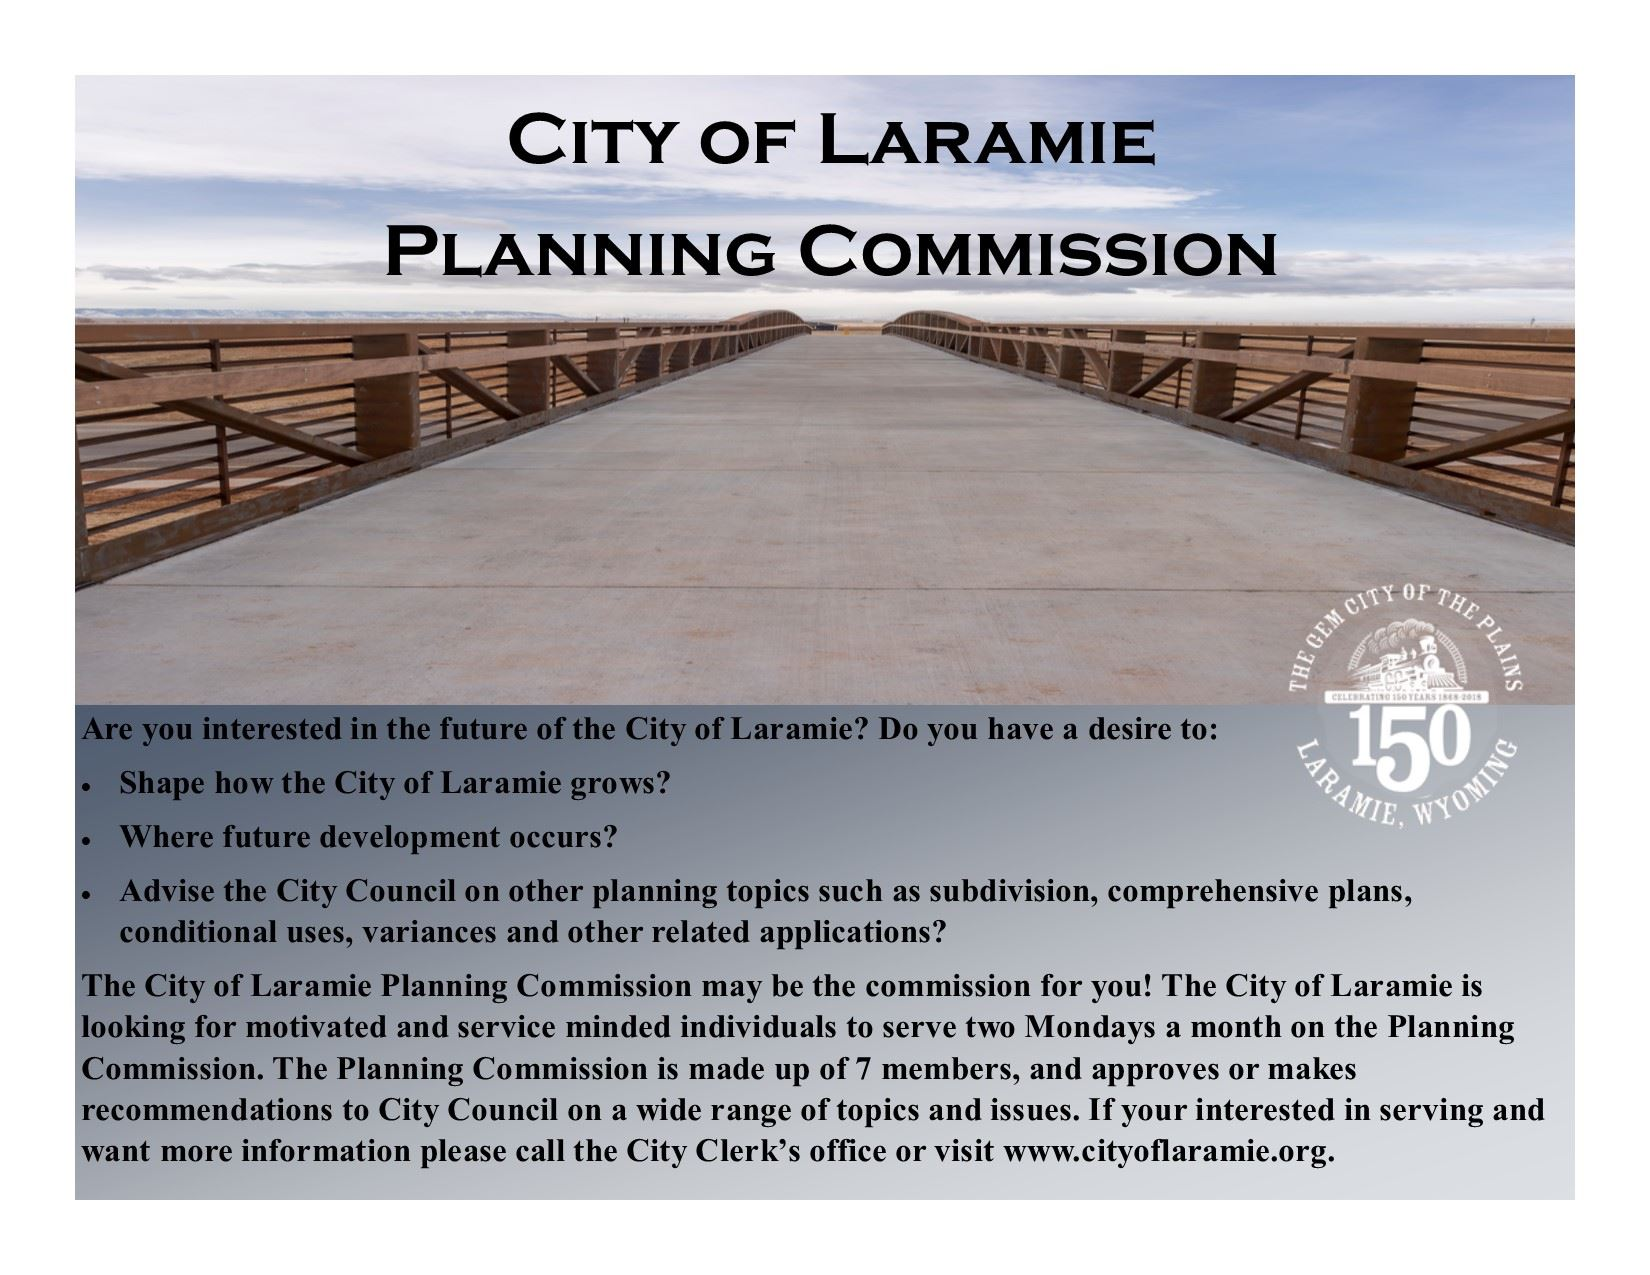 Planning Commission Ad 10-31-18 version 2 Final